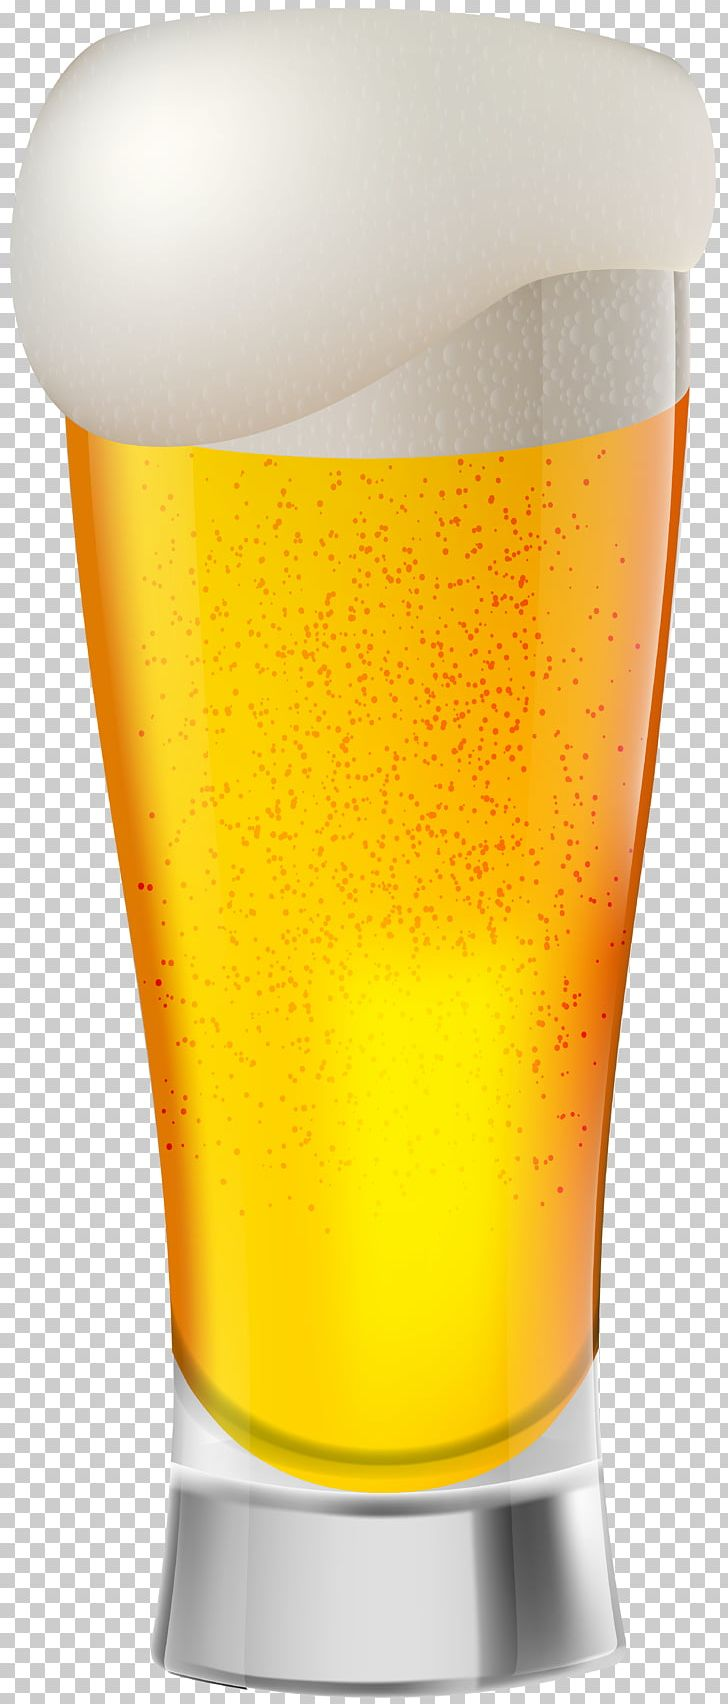 Beer Pint Glass Orange Drink United States Of America PNG, Clipart.